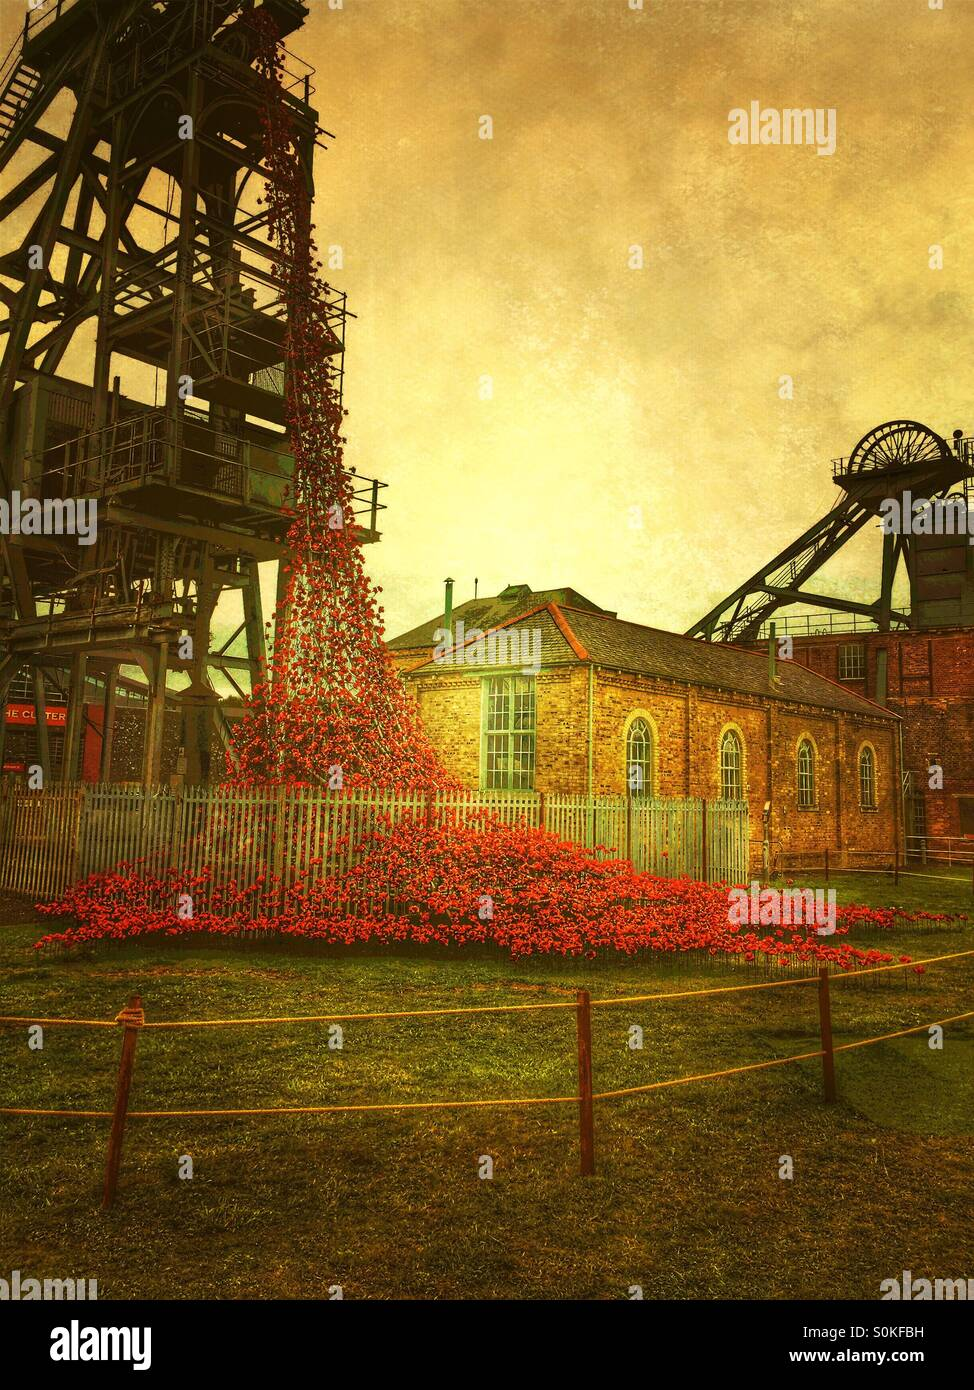 Weeping window poppy display, at Woodhorn Colliery in Ashington in Northumberland, to commemorate the soldiers of - Stock Image